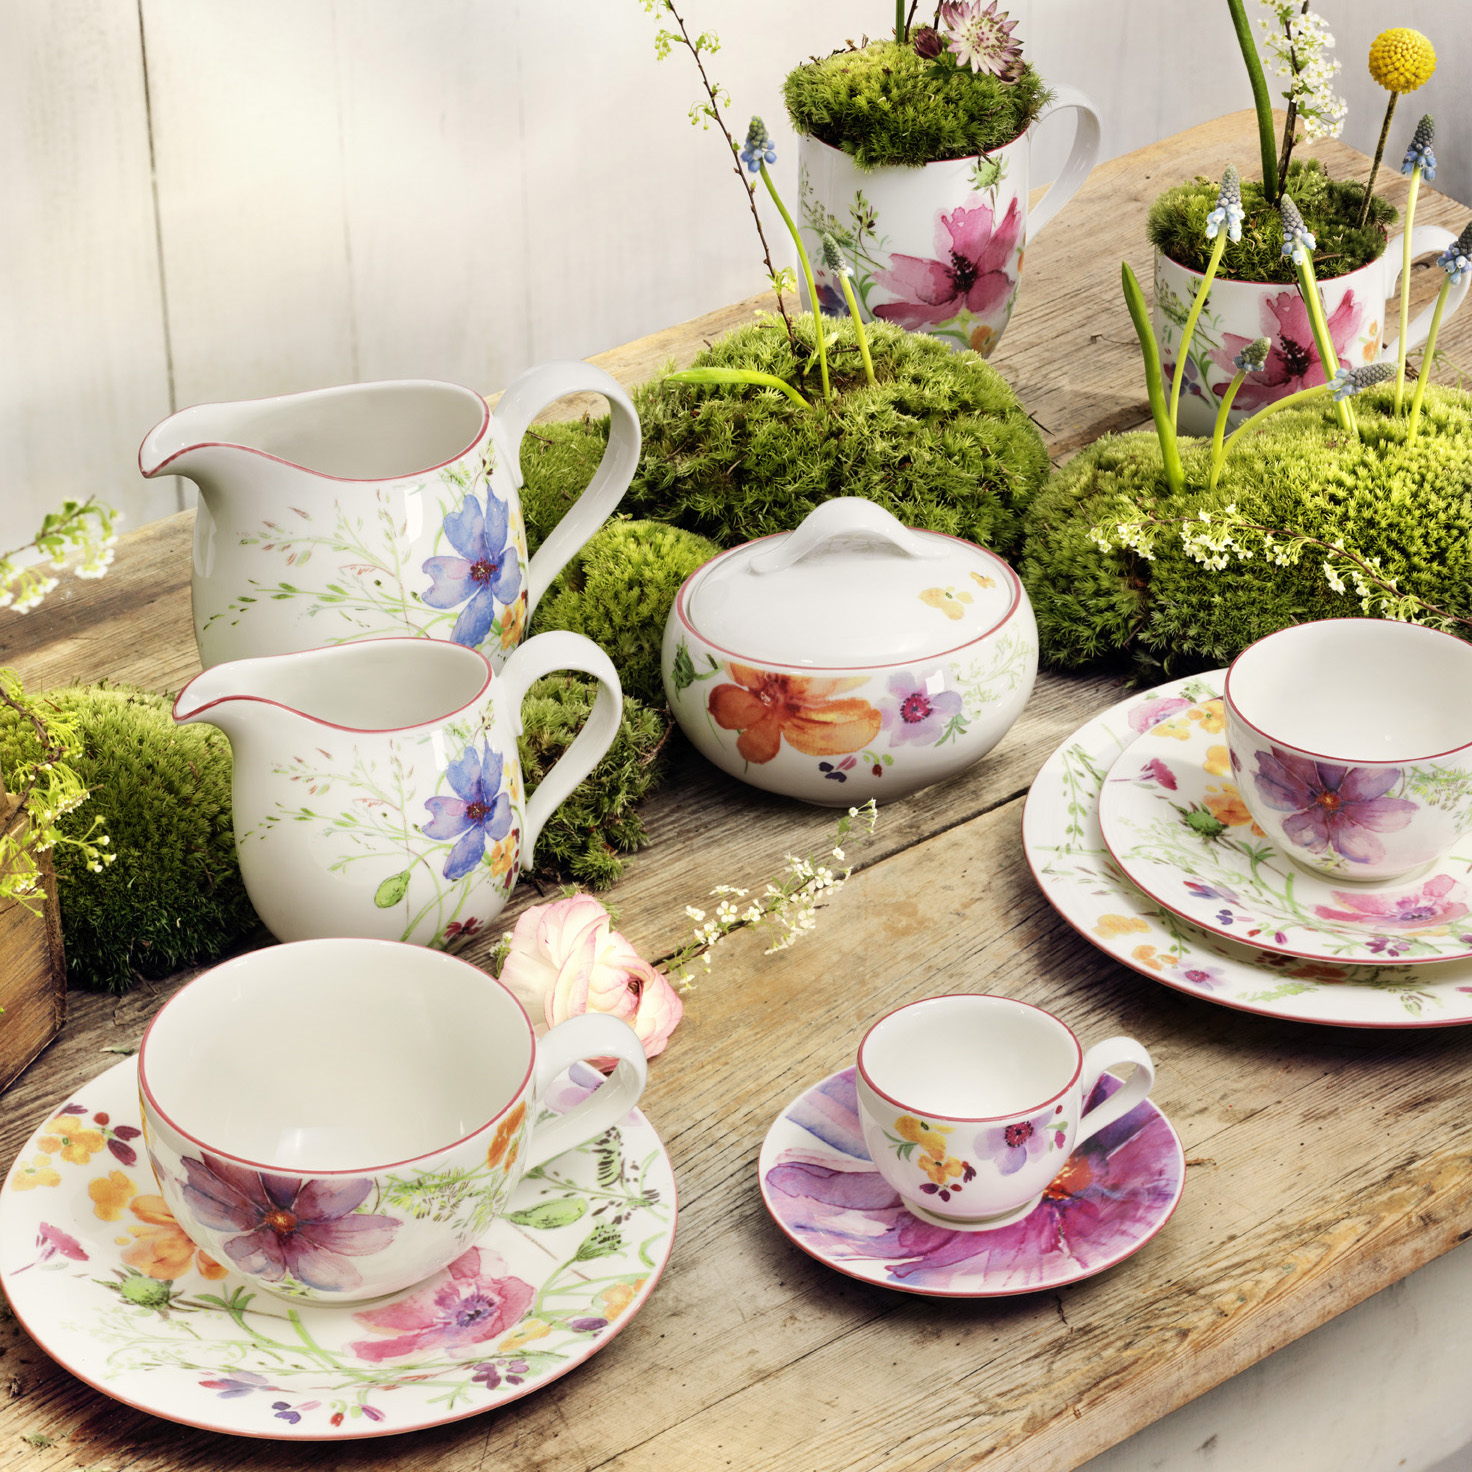 Good life 2 go villeroy boch mairefleur collection - Villeroy y bosch ...